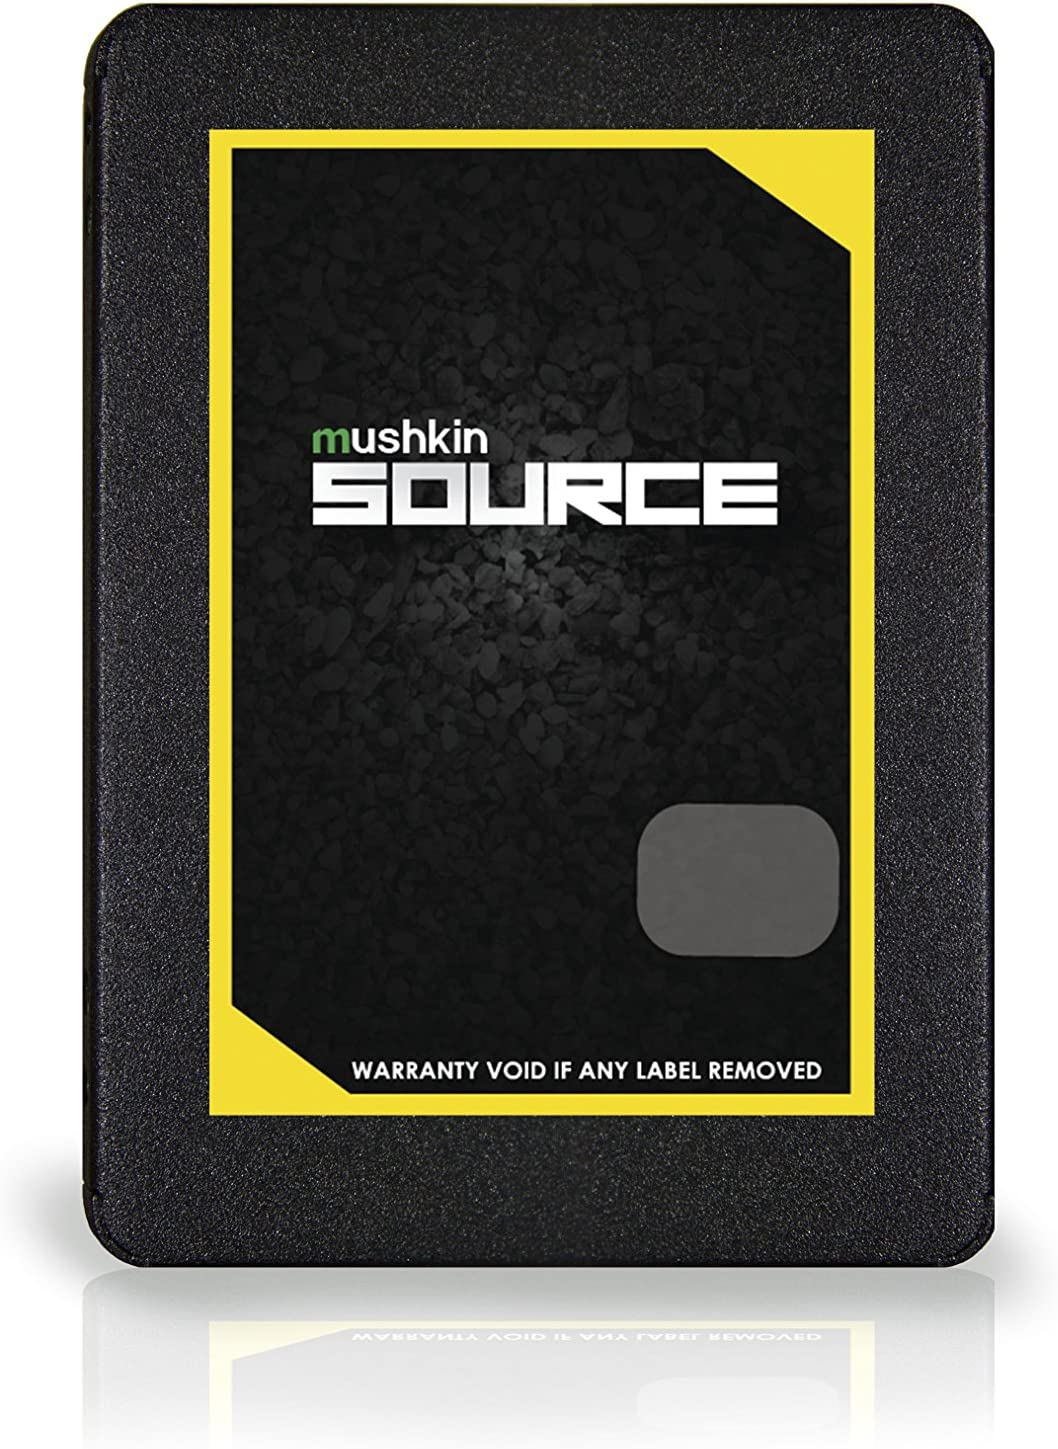 Mushkin Source - 500GB Internal Solid State Drive (SSD) - 2.5 Inch - SATA III - 6Gb/s - 3D Vertical TLC - 7mm – (MKNSSDSR500GB)